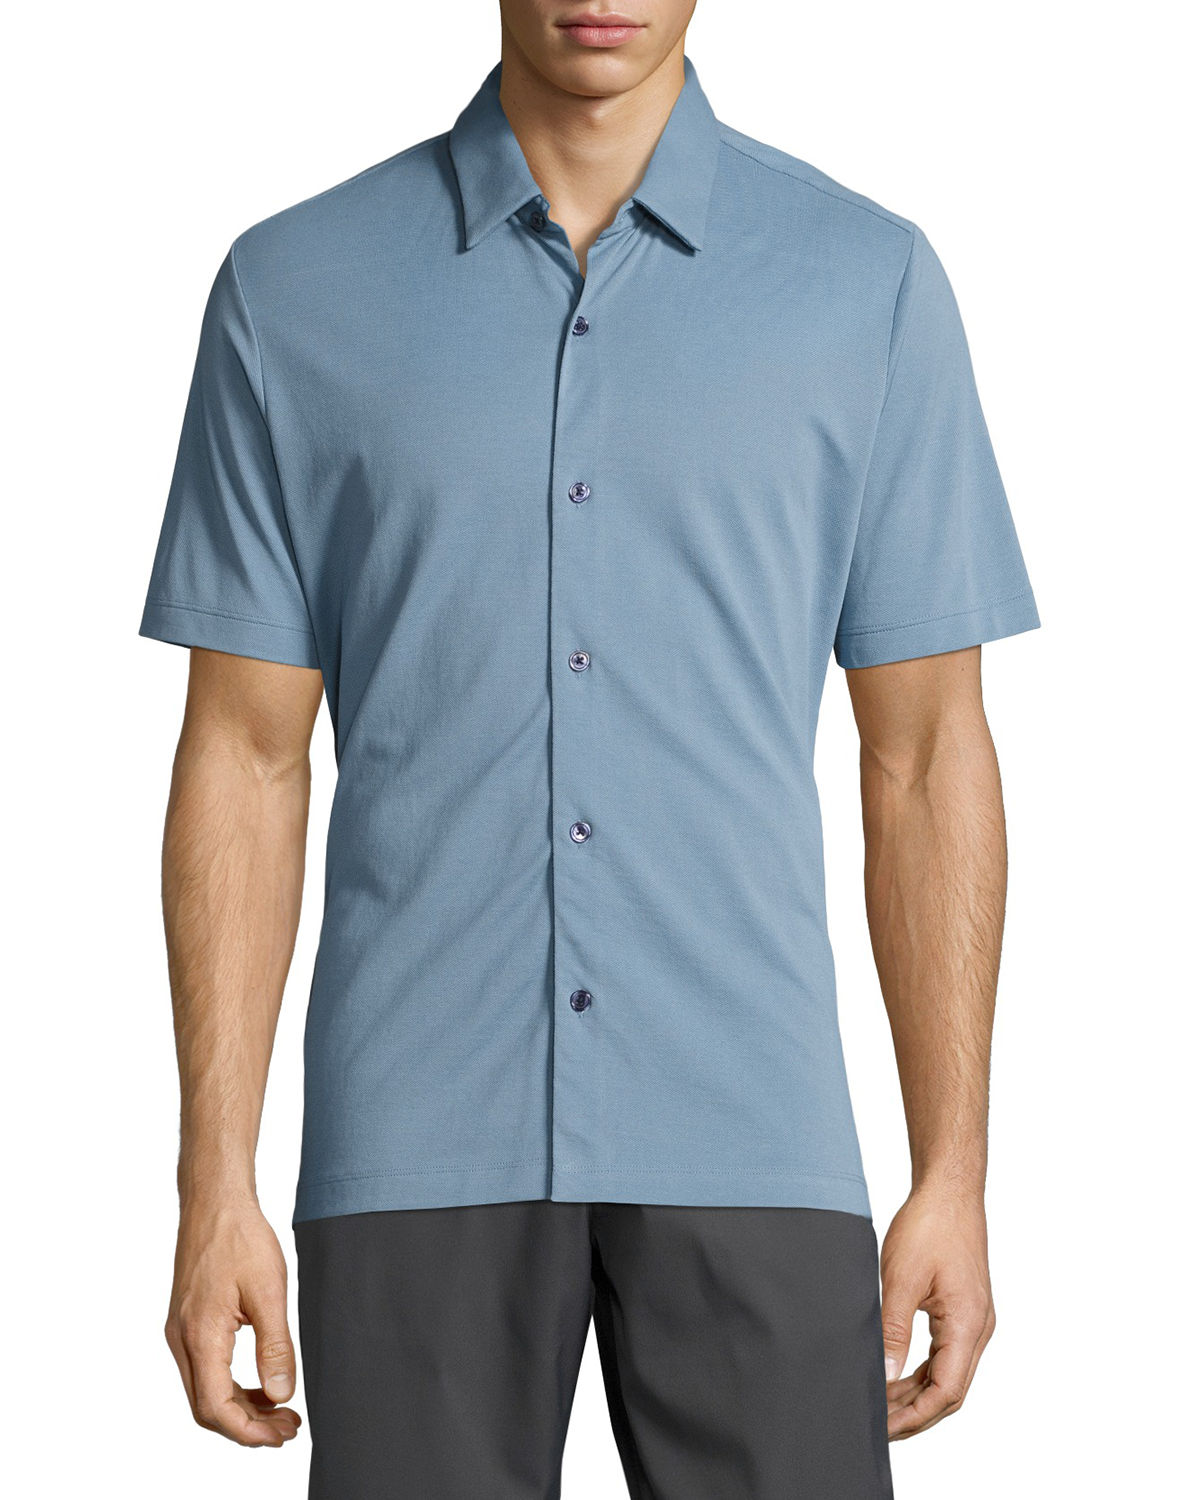 Air Pique Short-Sleeve Shirt